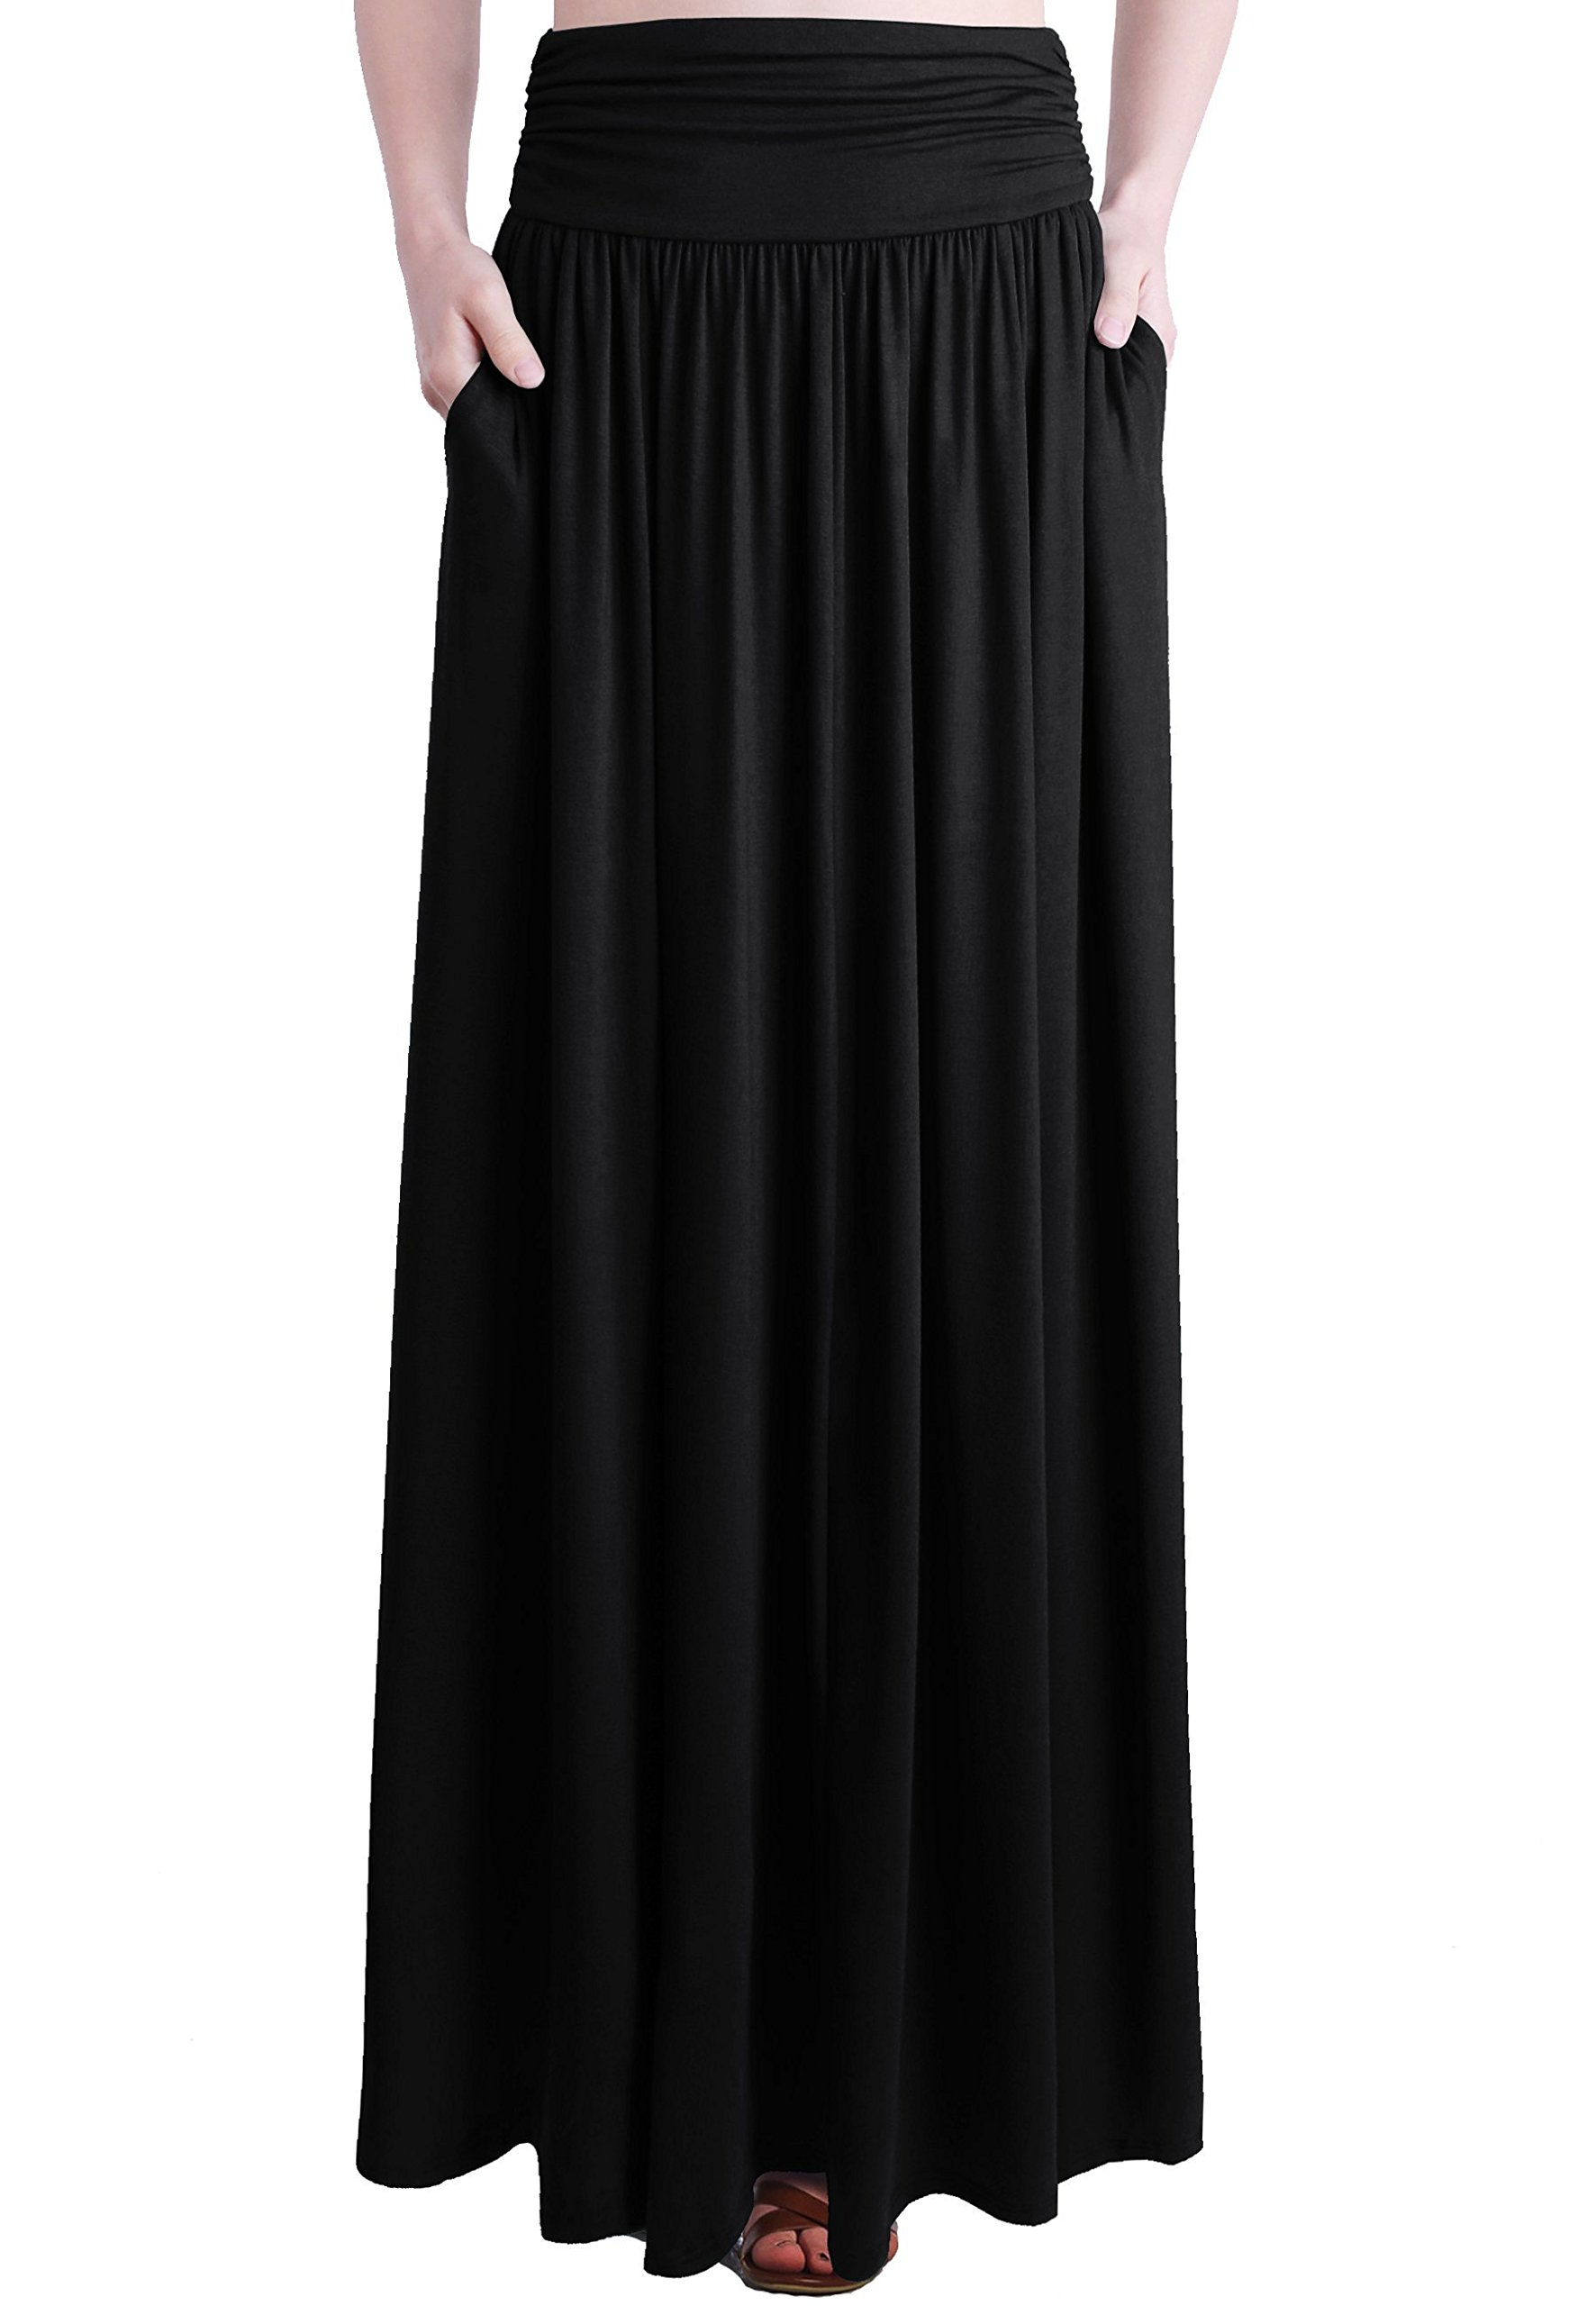 TRENDY UNITED Women's Rayon Spandex High Waist Shirring Maxi Skirt With Pockets (Blk, Medium)